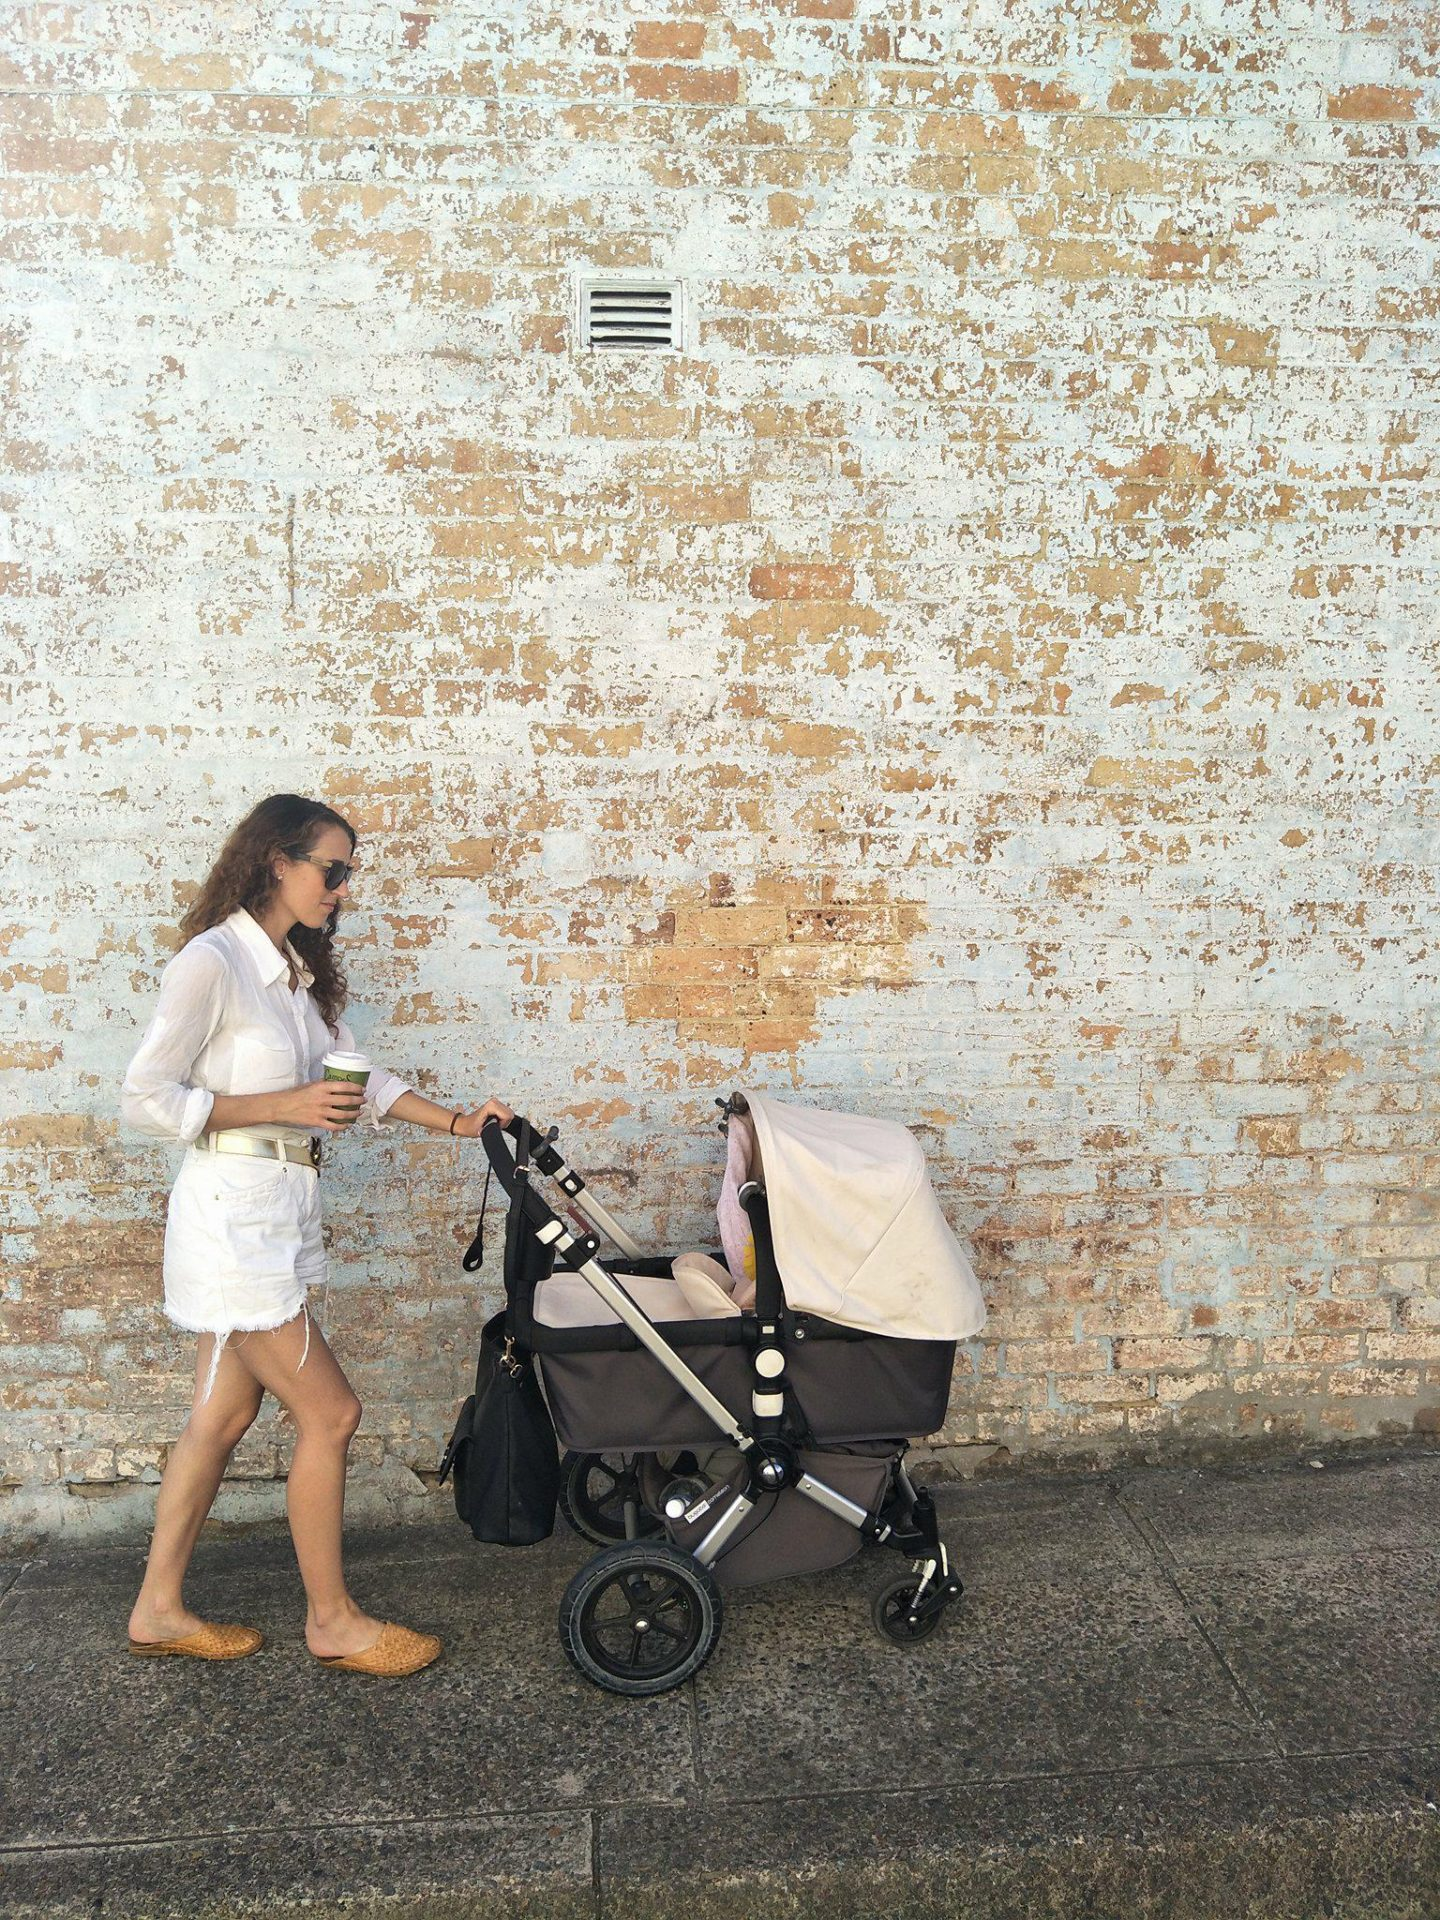 Opinion: Why Having a Baby Doesn't Need to be a Career Speed Bump